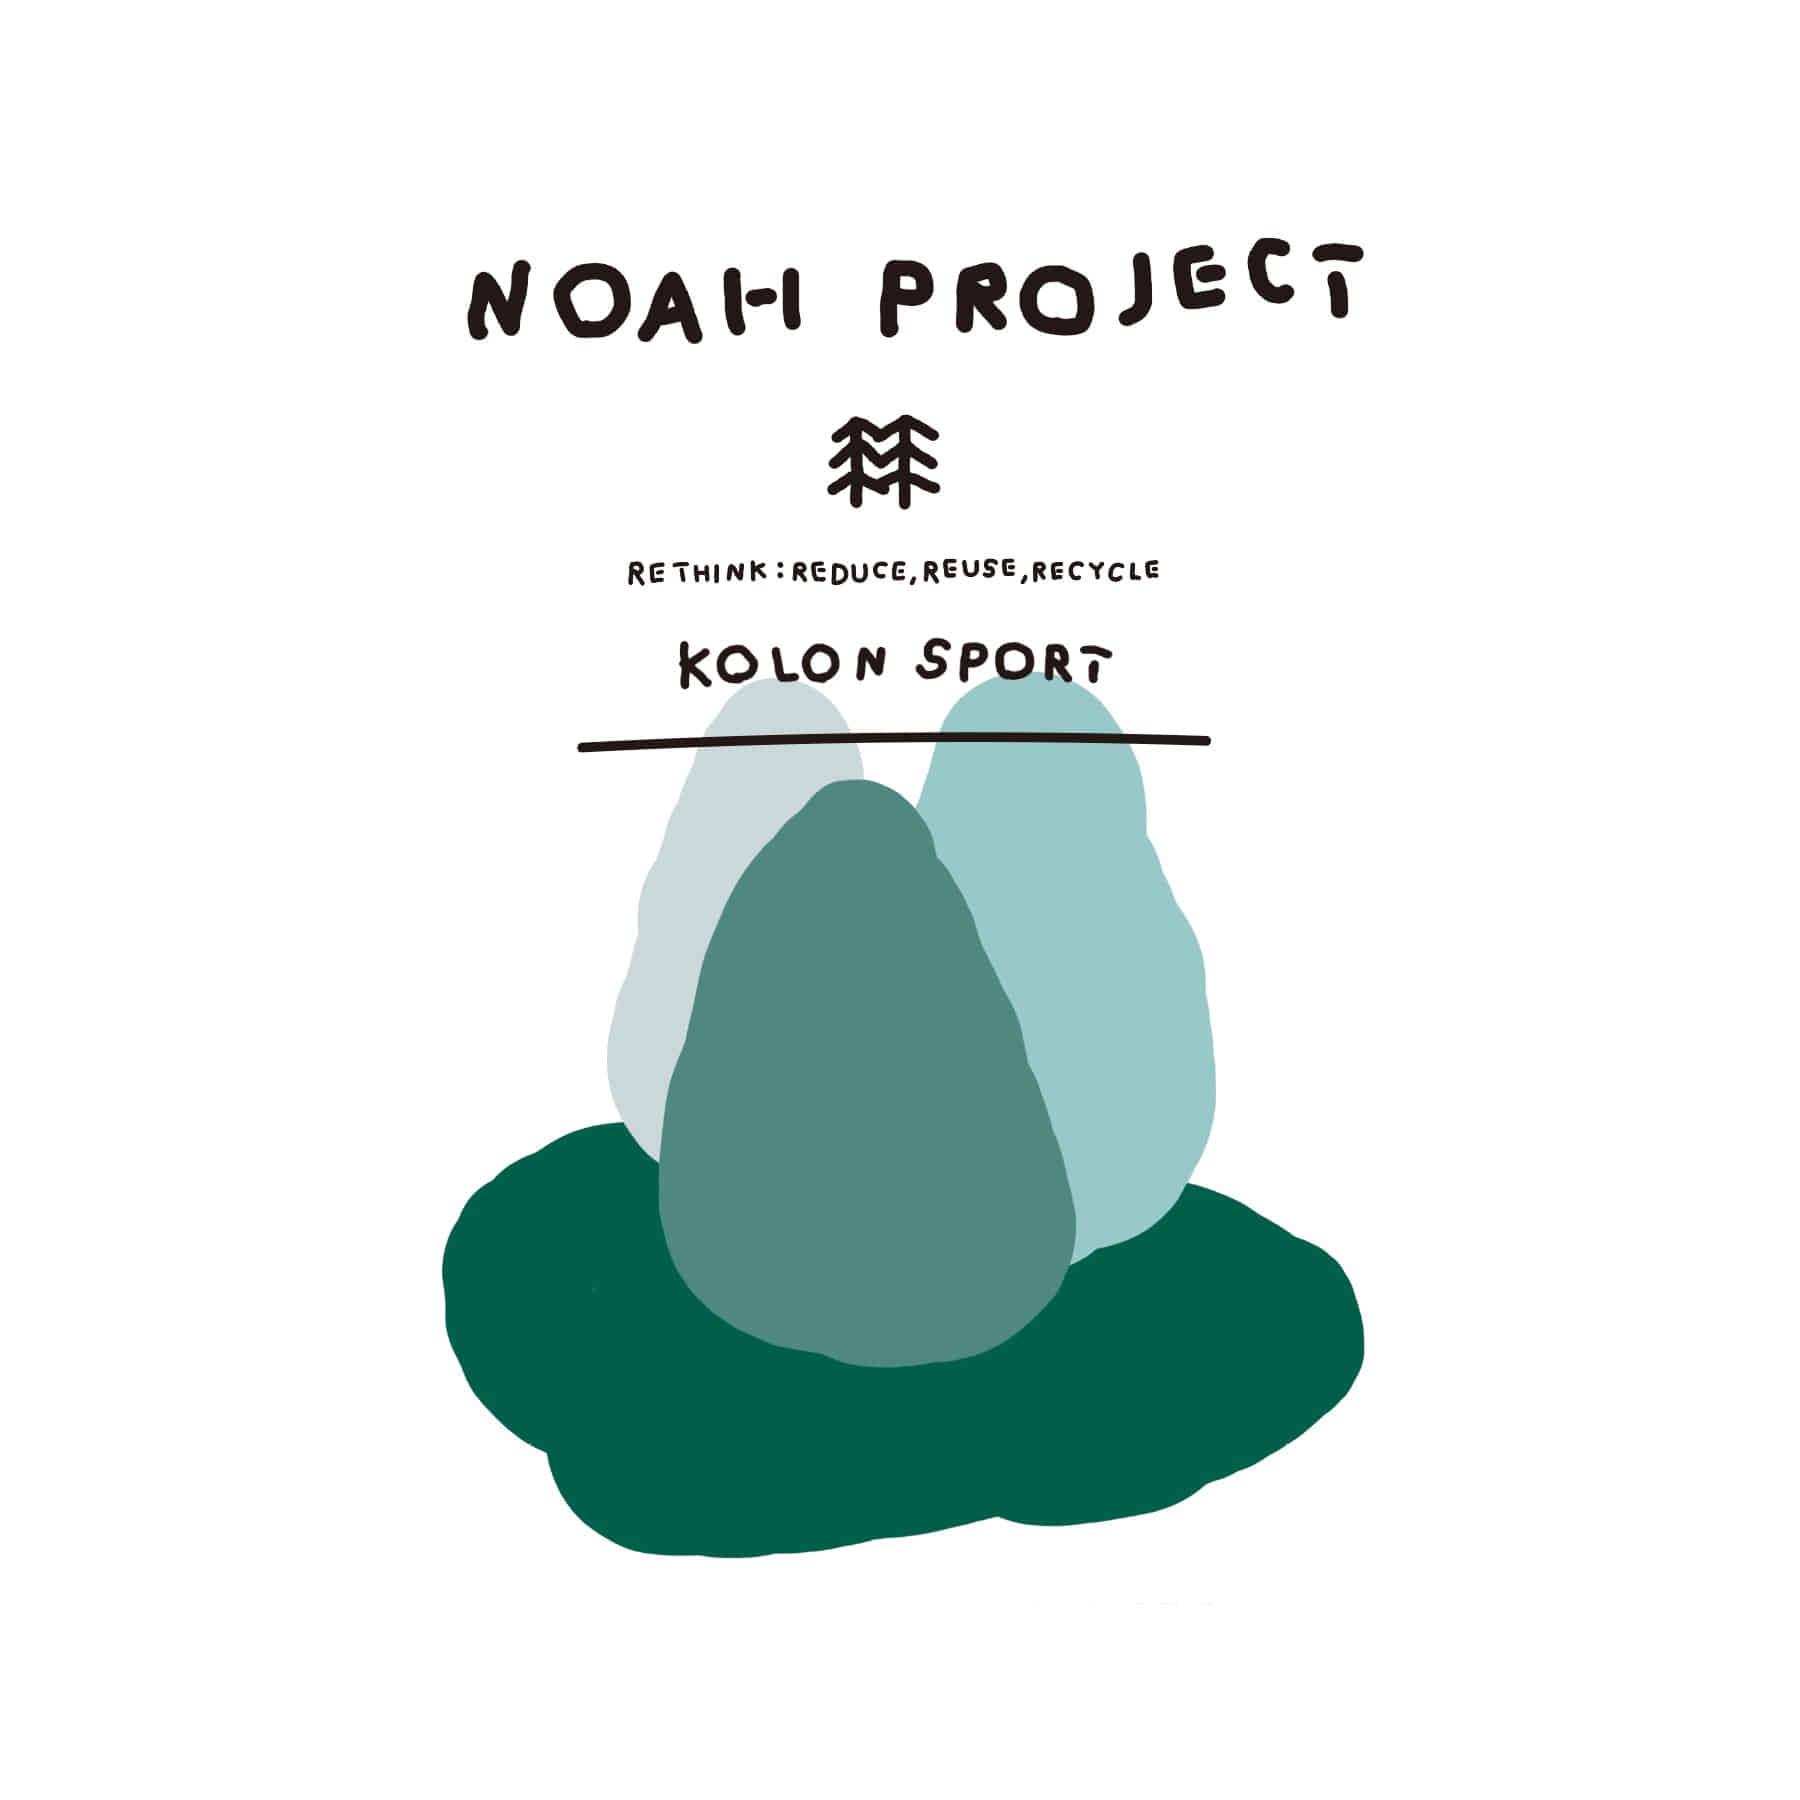 NOAH PROJECT by KOLON SPORT